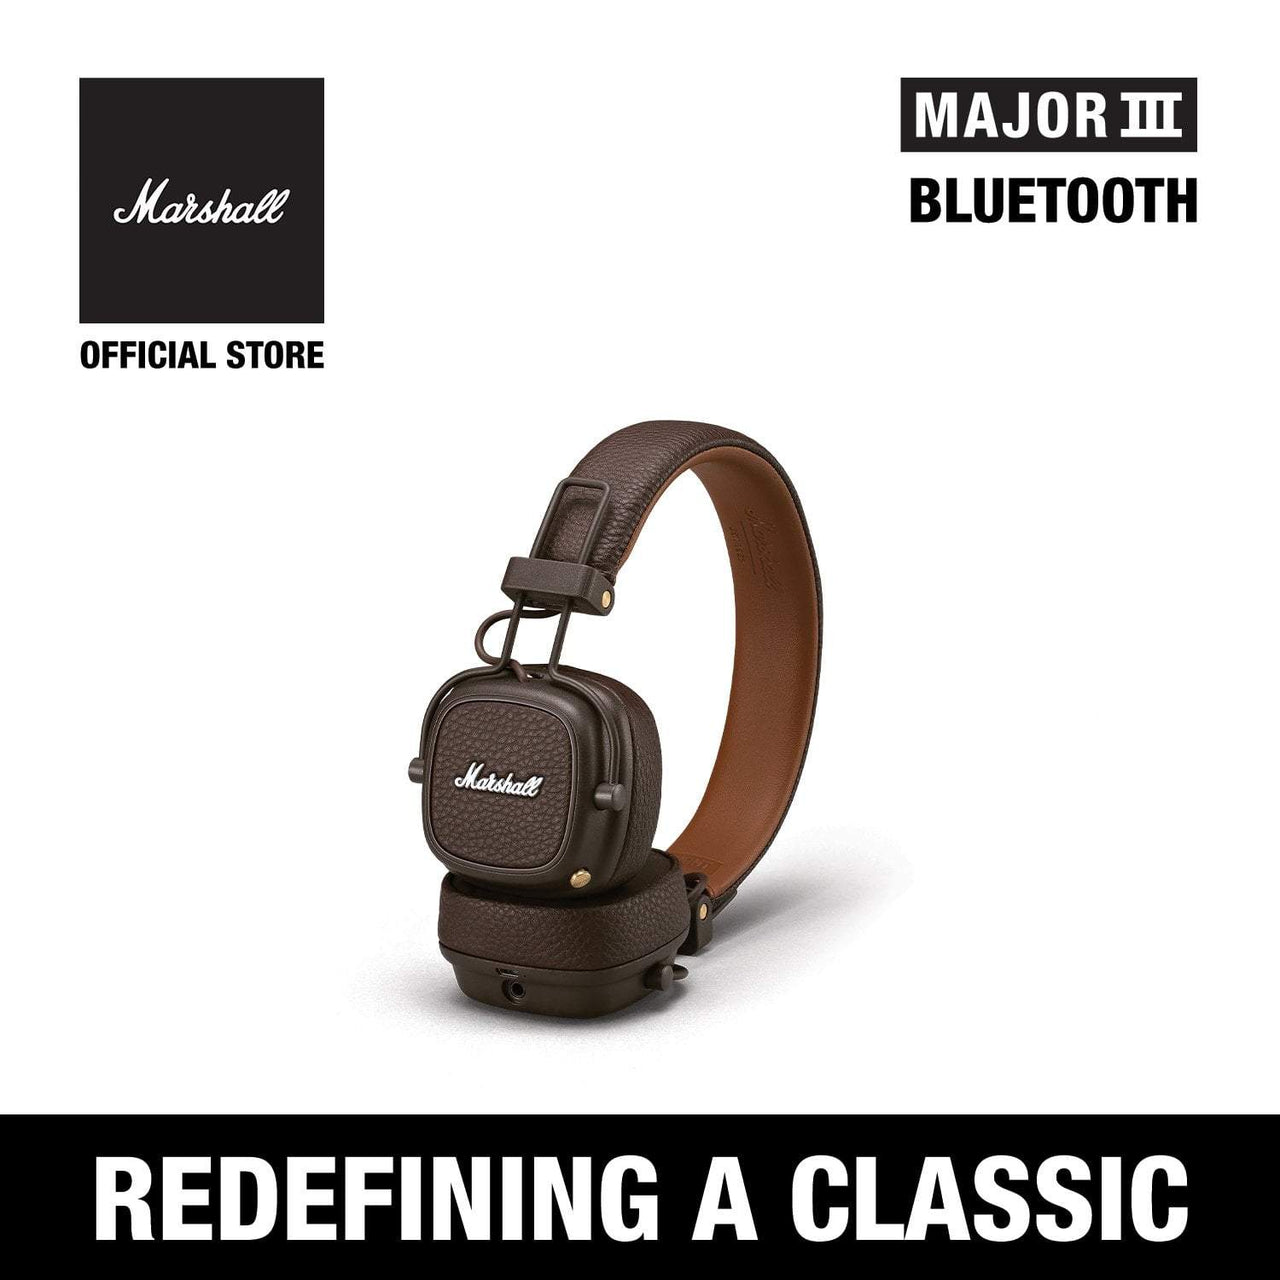 Major III Bluetooth Brown [Exclusive Partner], Headphones, Marshall Headphones, ASH Asia